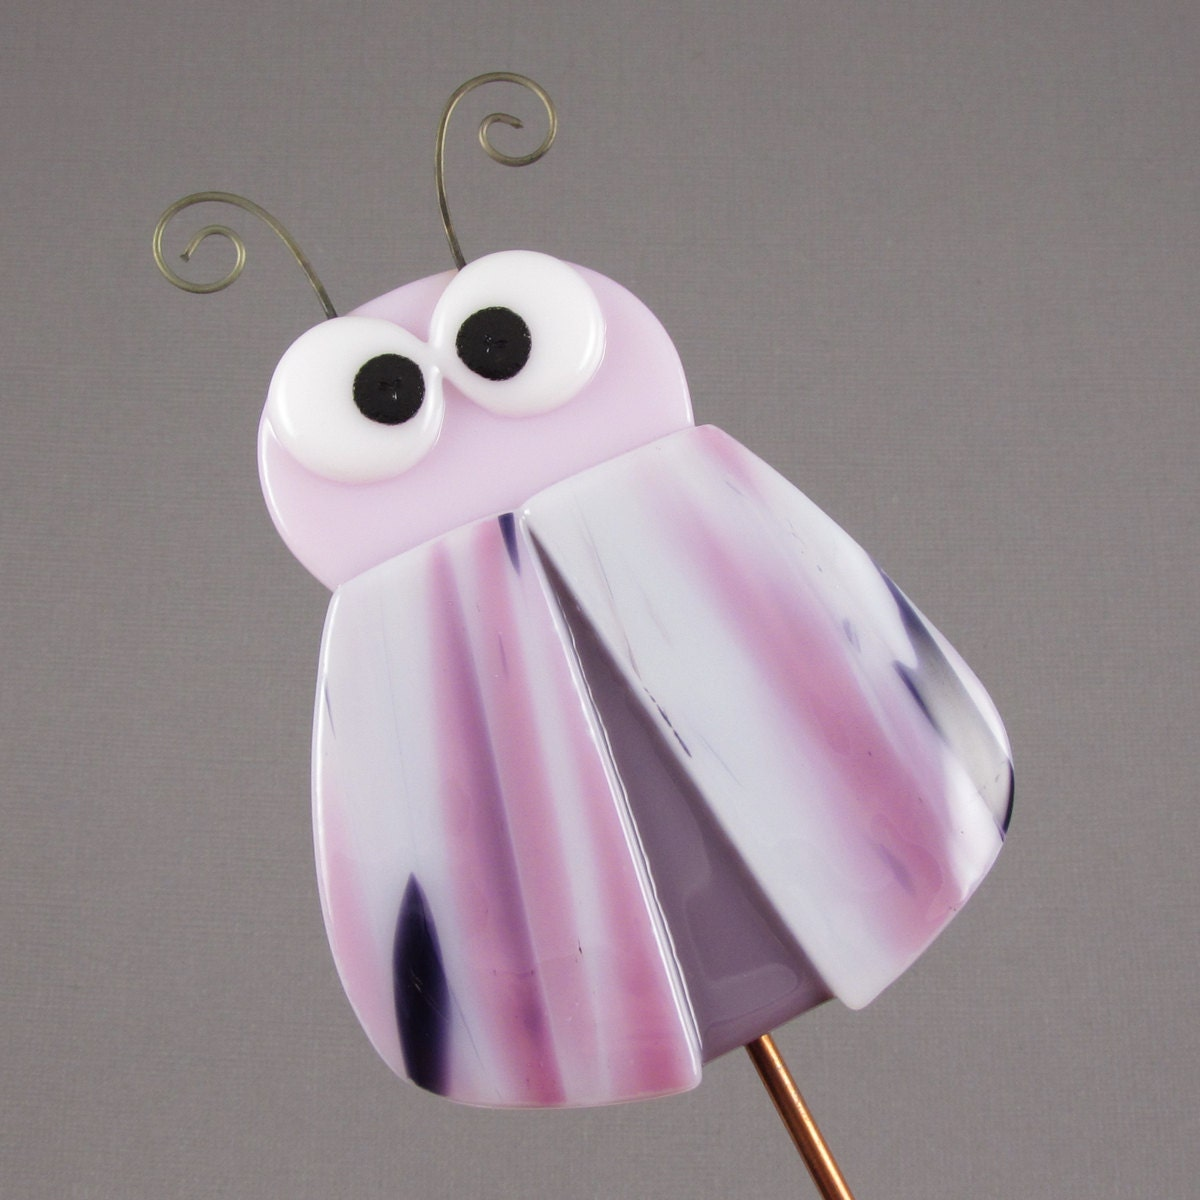 Bug Garden Stake - Crazy Fused Glass Bug - Pink, Purple & White - AngelasGlassStudio